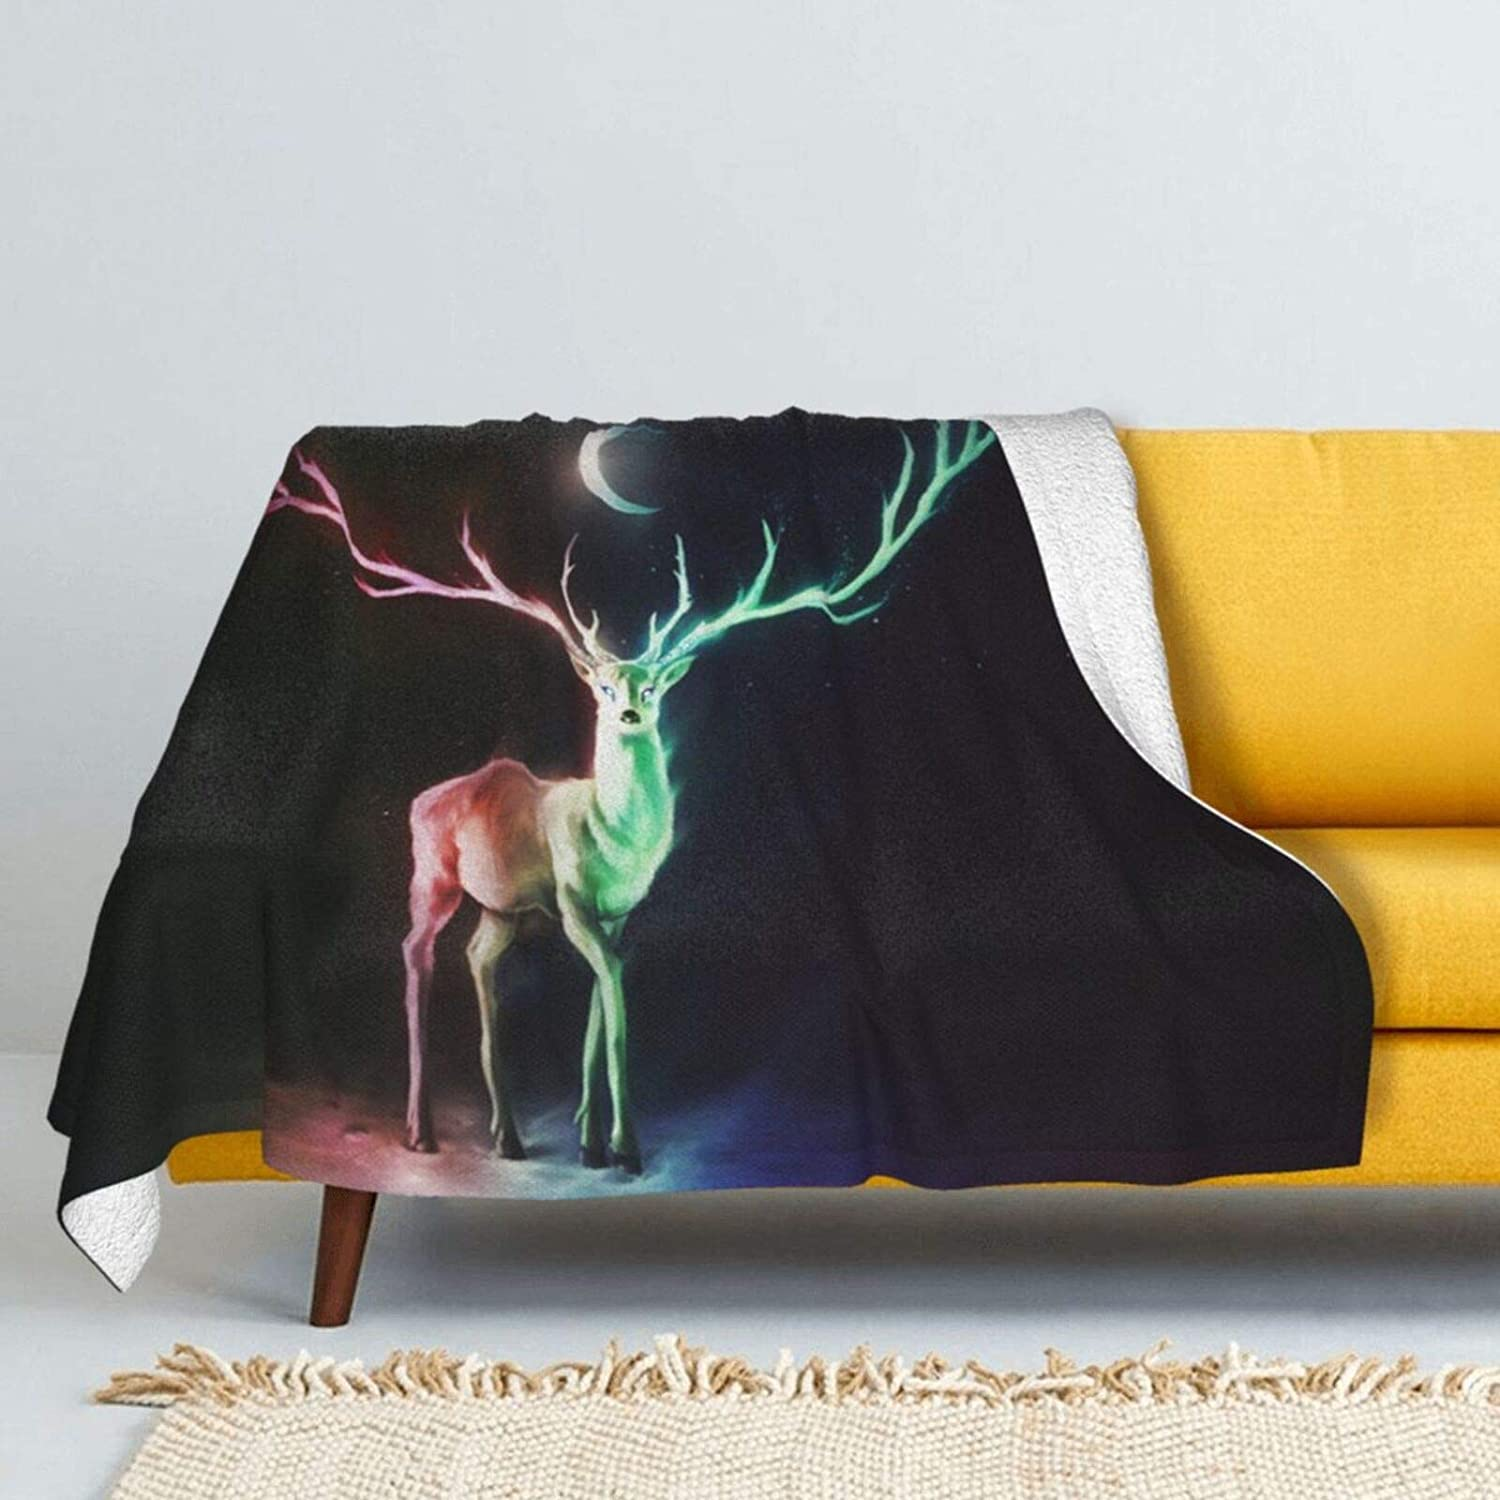 Deer Safety and trust Moon Horns Free Shipping Cheap Bargain Gift Stars Lamb Wool Soft Blanket Throw Double- Super